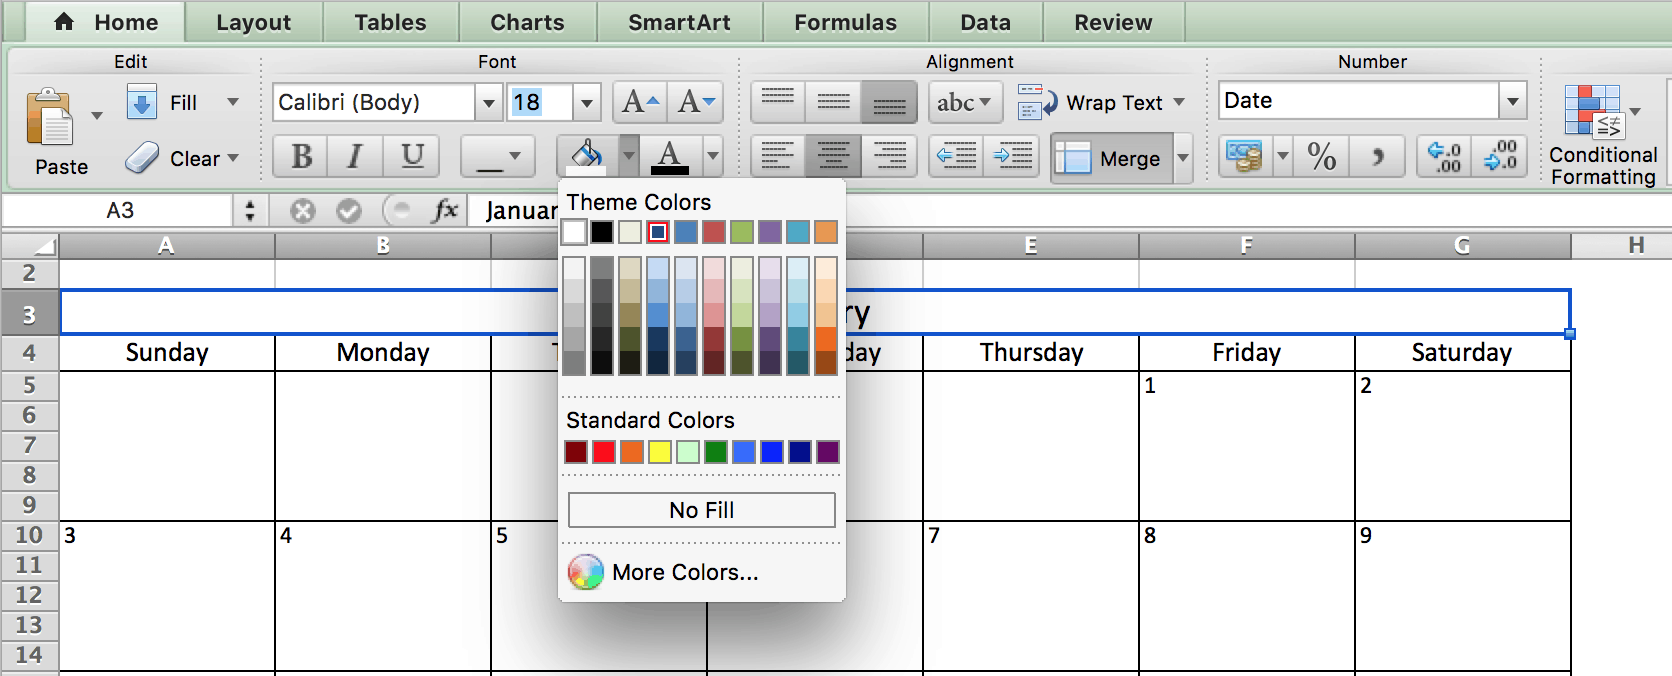 Ediblewildsus  Pretty Make A  Calendar In Excel Includes Free Template With Hot Choosing Colors  Calendar In Excel With Nice How To Alphabetize A Column In Excel Also Bullet Point In Excel In Addition Powerpivot Excel And Excel Formula Not Working As Well As Grid Lines Excel Additionally Create Timeline In Excel From Smartsheetcom With Ediblewildsus  Hot Make A  Calendar In Excel Includes Free Template With Nice Choosing Colors  Calendar In Excel And Pretty How To Alphabetize A Column In Excel Also Bullet Point In Excel In Addition Powerpivot Excel From Smartsheetcom